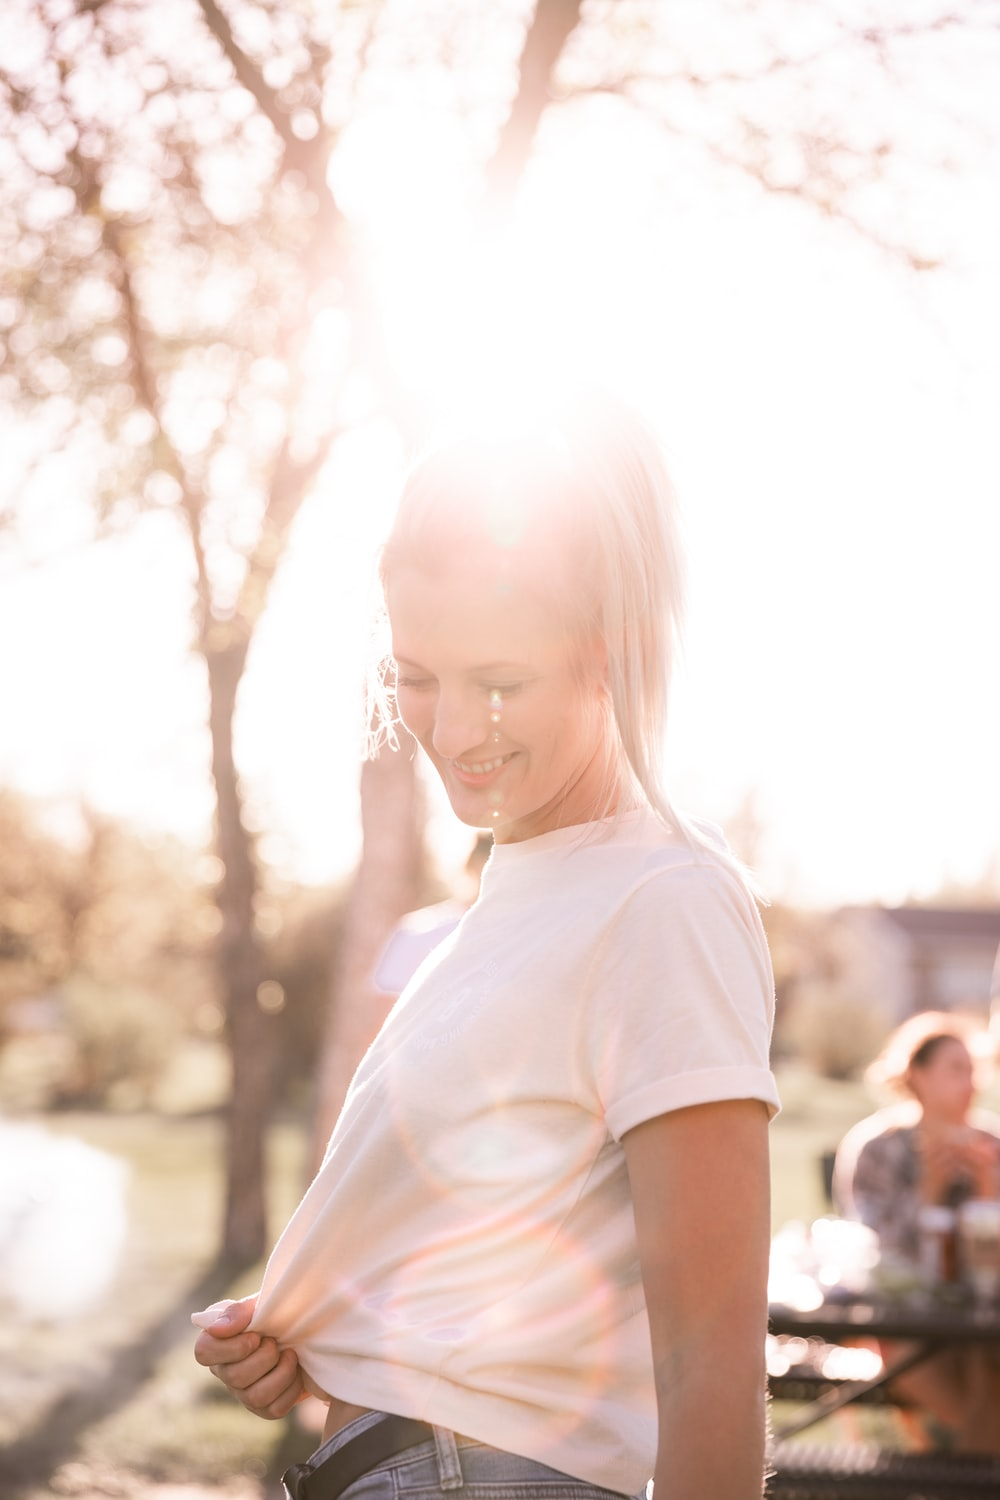 girl in white crew neck t-shirt standing during daytime